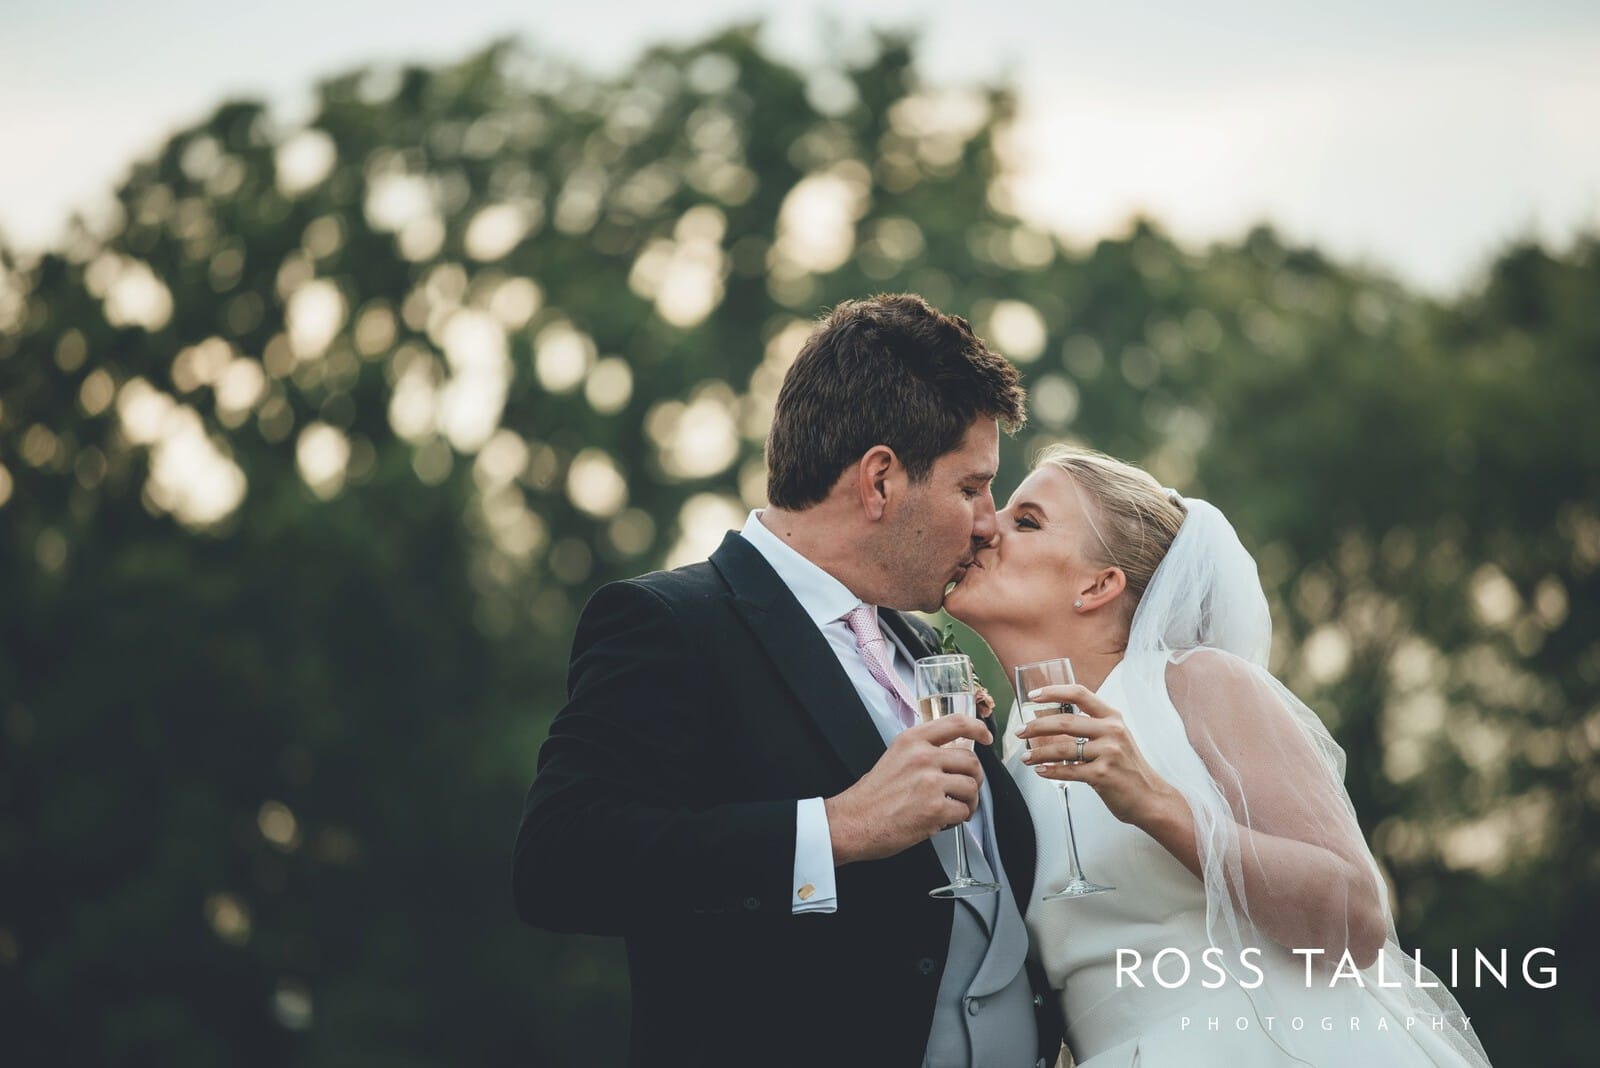 Sussex Wedding Photography by Ross Talling_0088